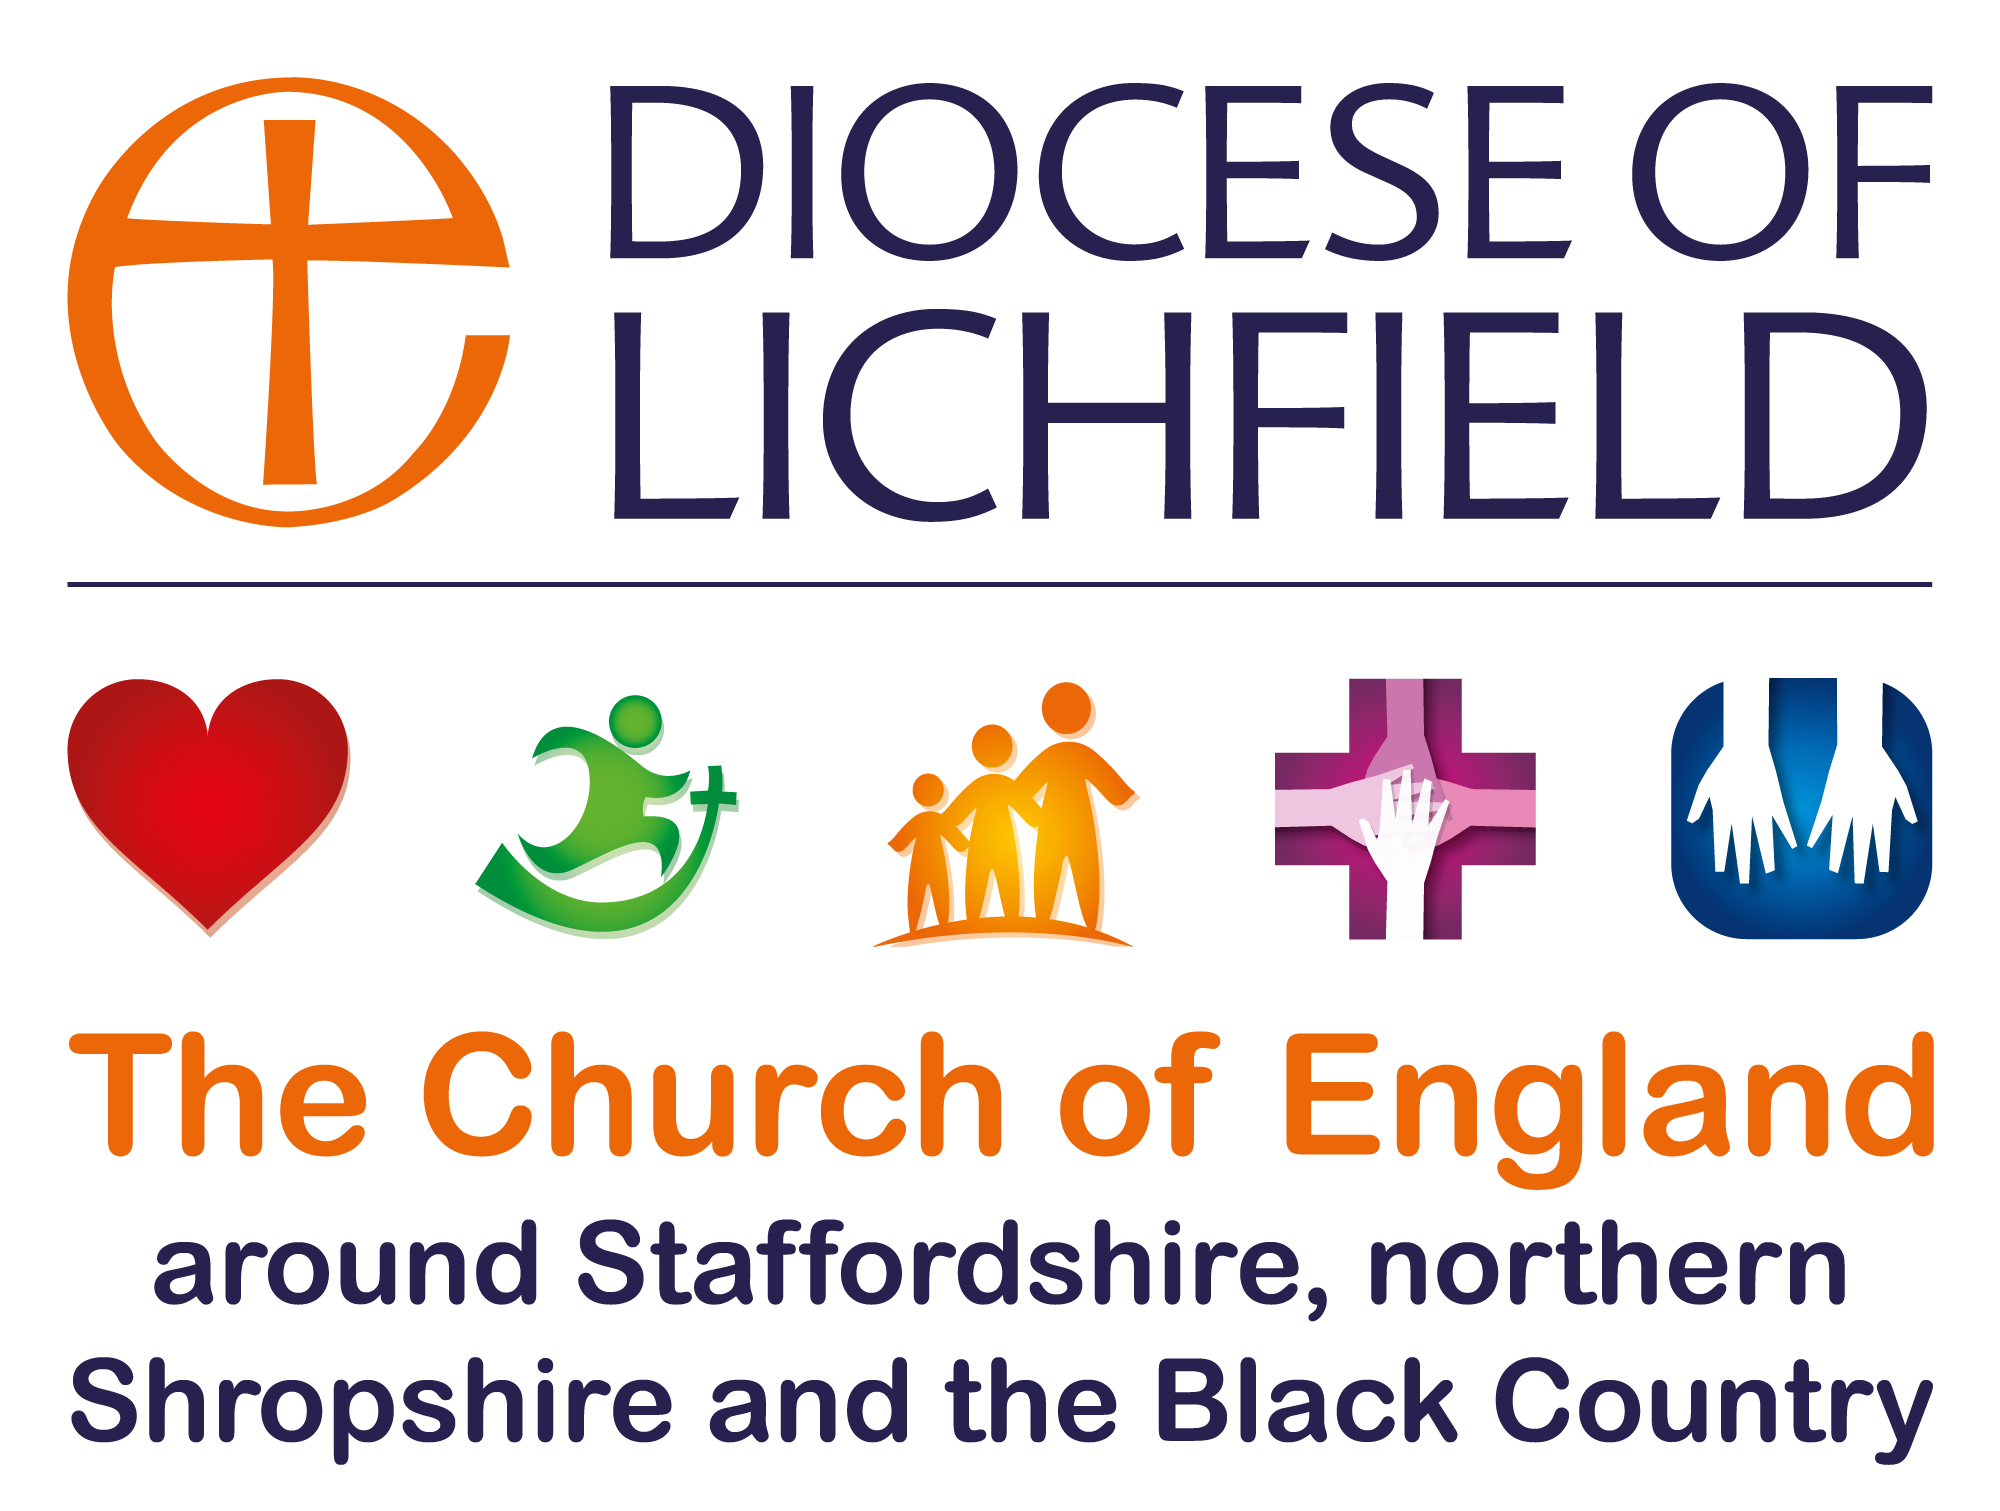 The Diocese of Lichfield